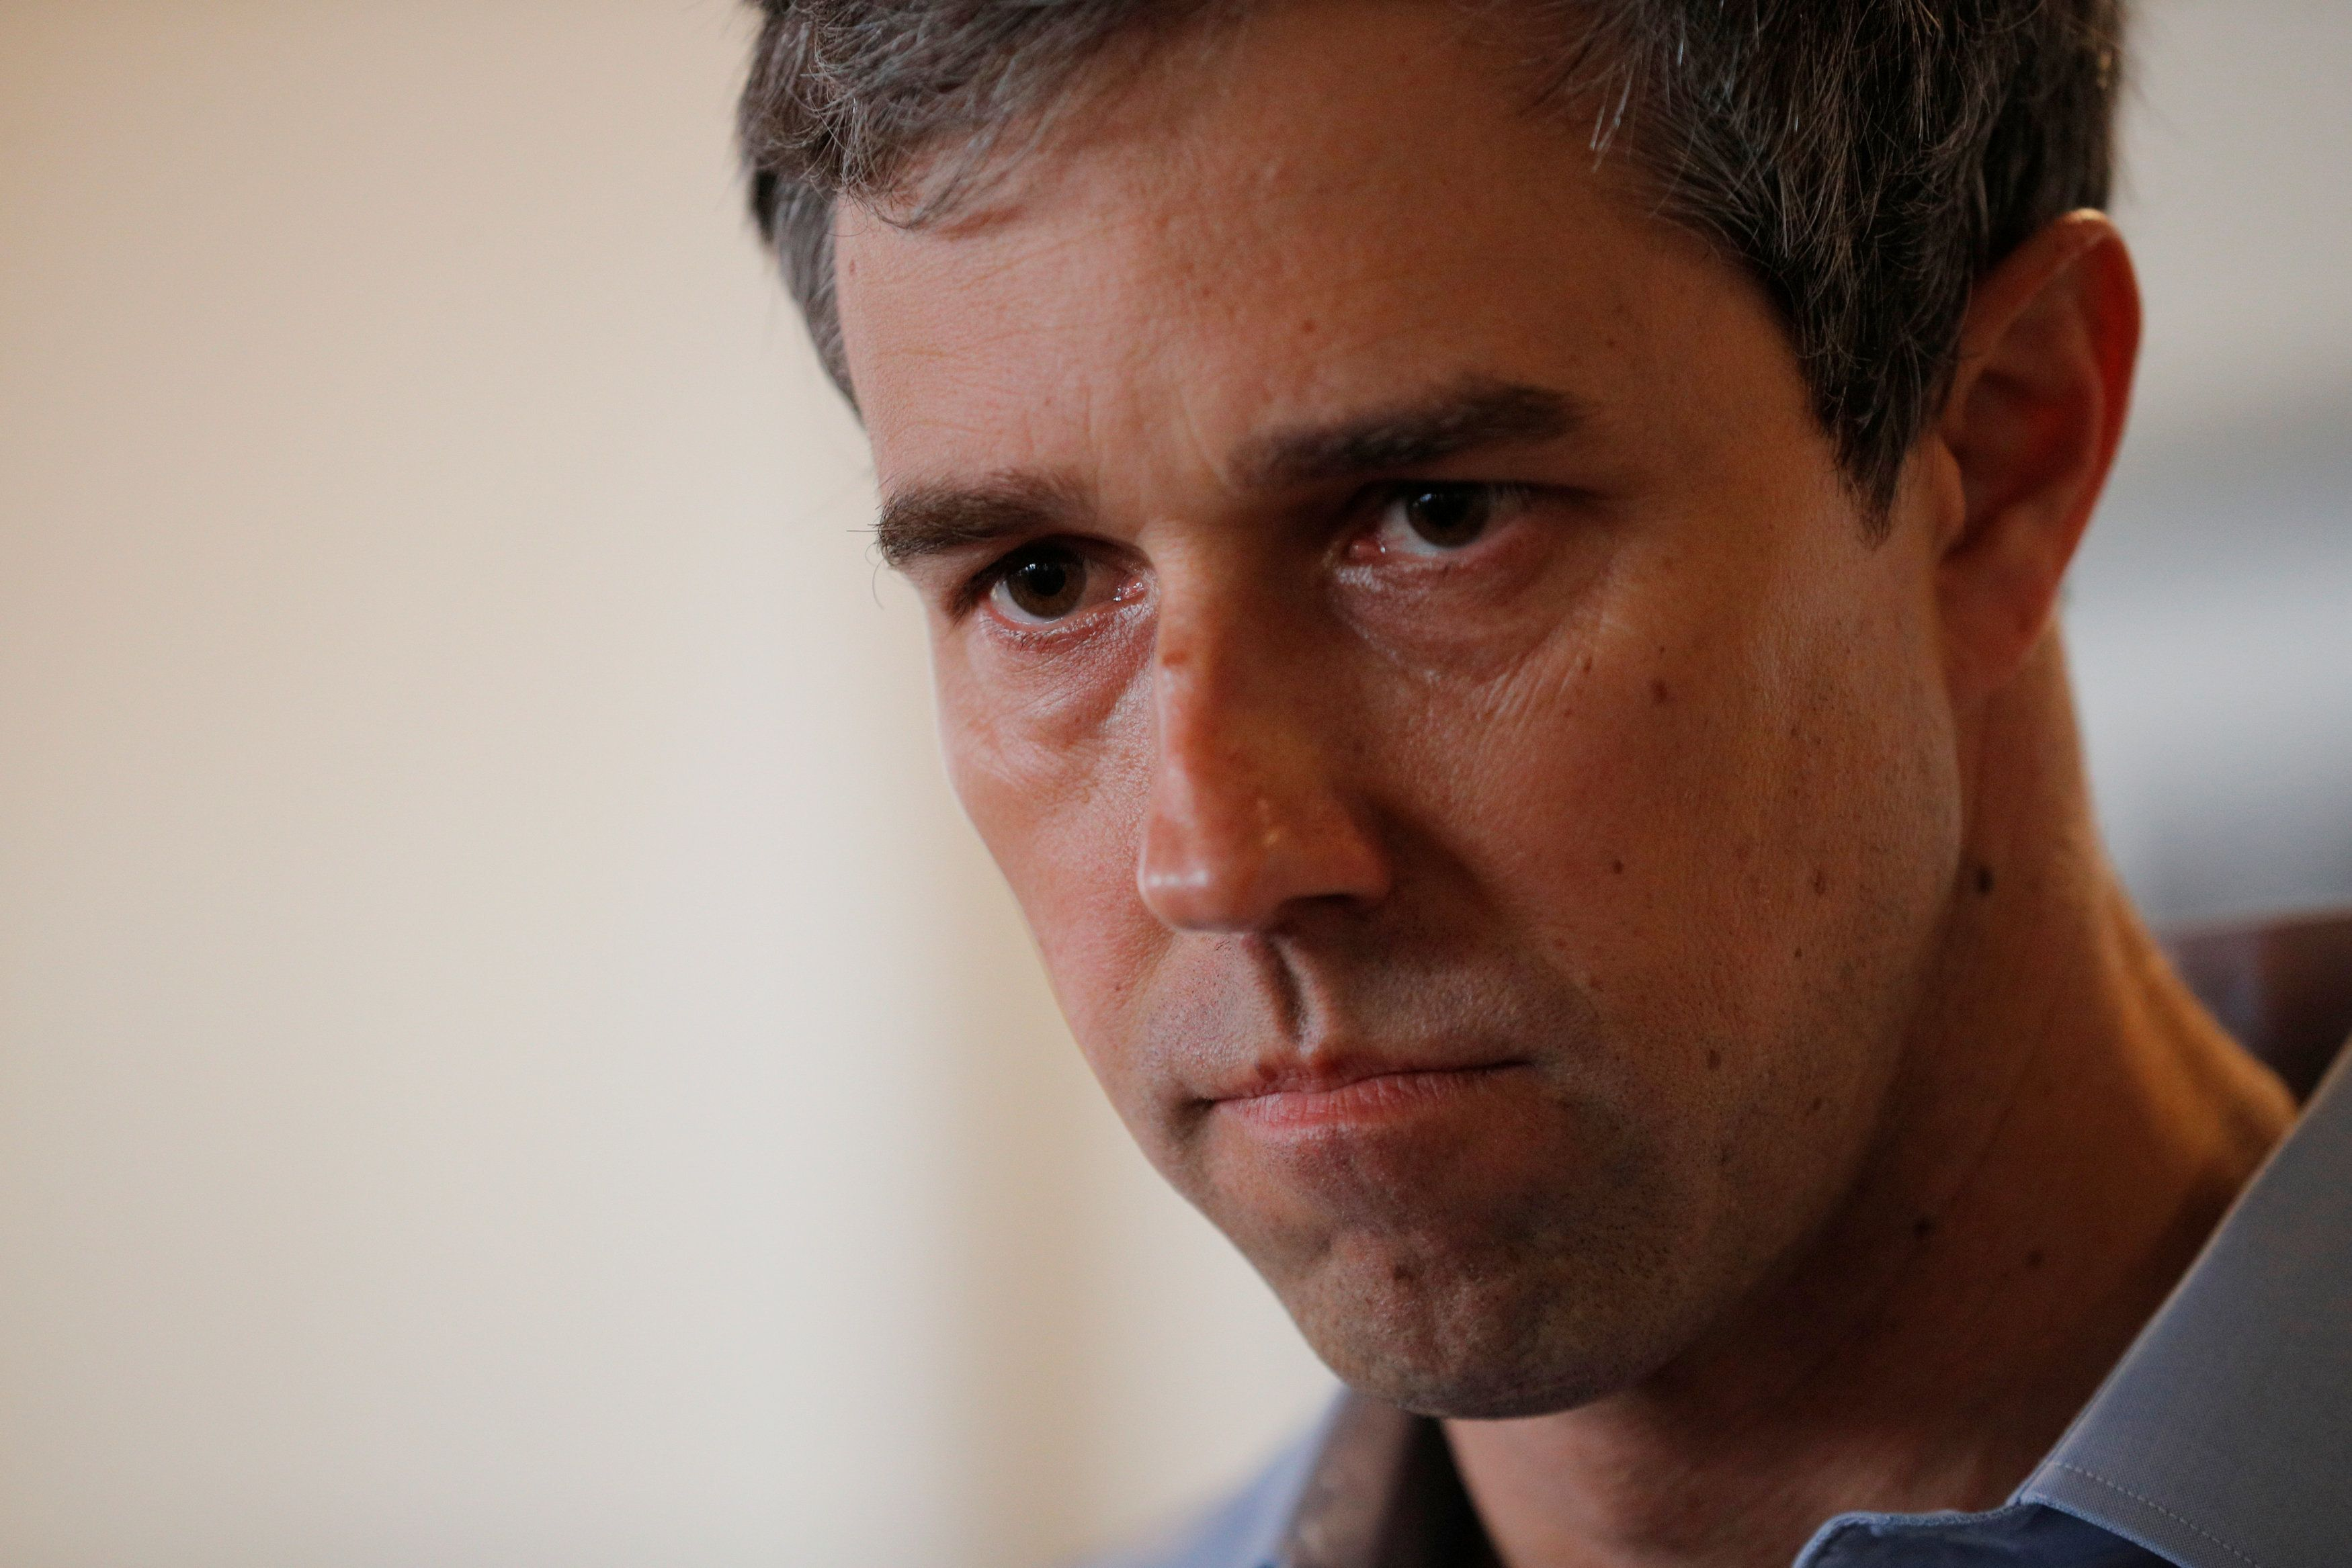 Democratic 2020 U.S. presidential candidate and former U.S. Representative Beto O'Rourke listens to a question from the audience during a campaign stop at Popovers Bakery and Cafe in Portsmouth, New Hampshire, U.S., March 21, 2019.   REUTERS/Brian Snyder